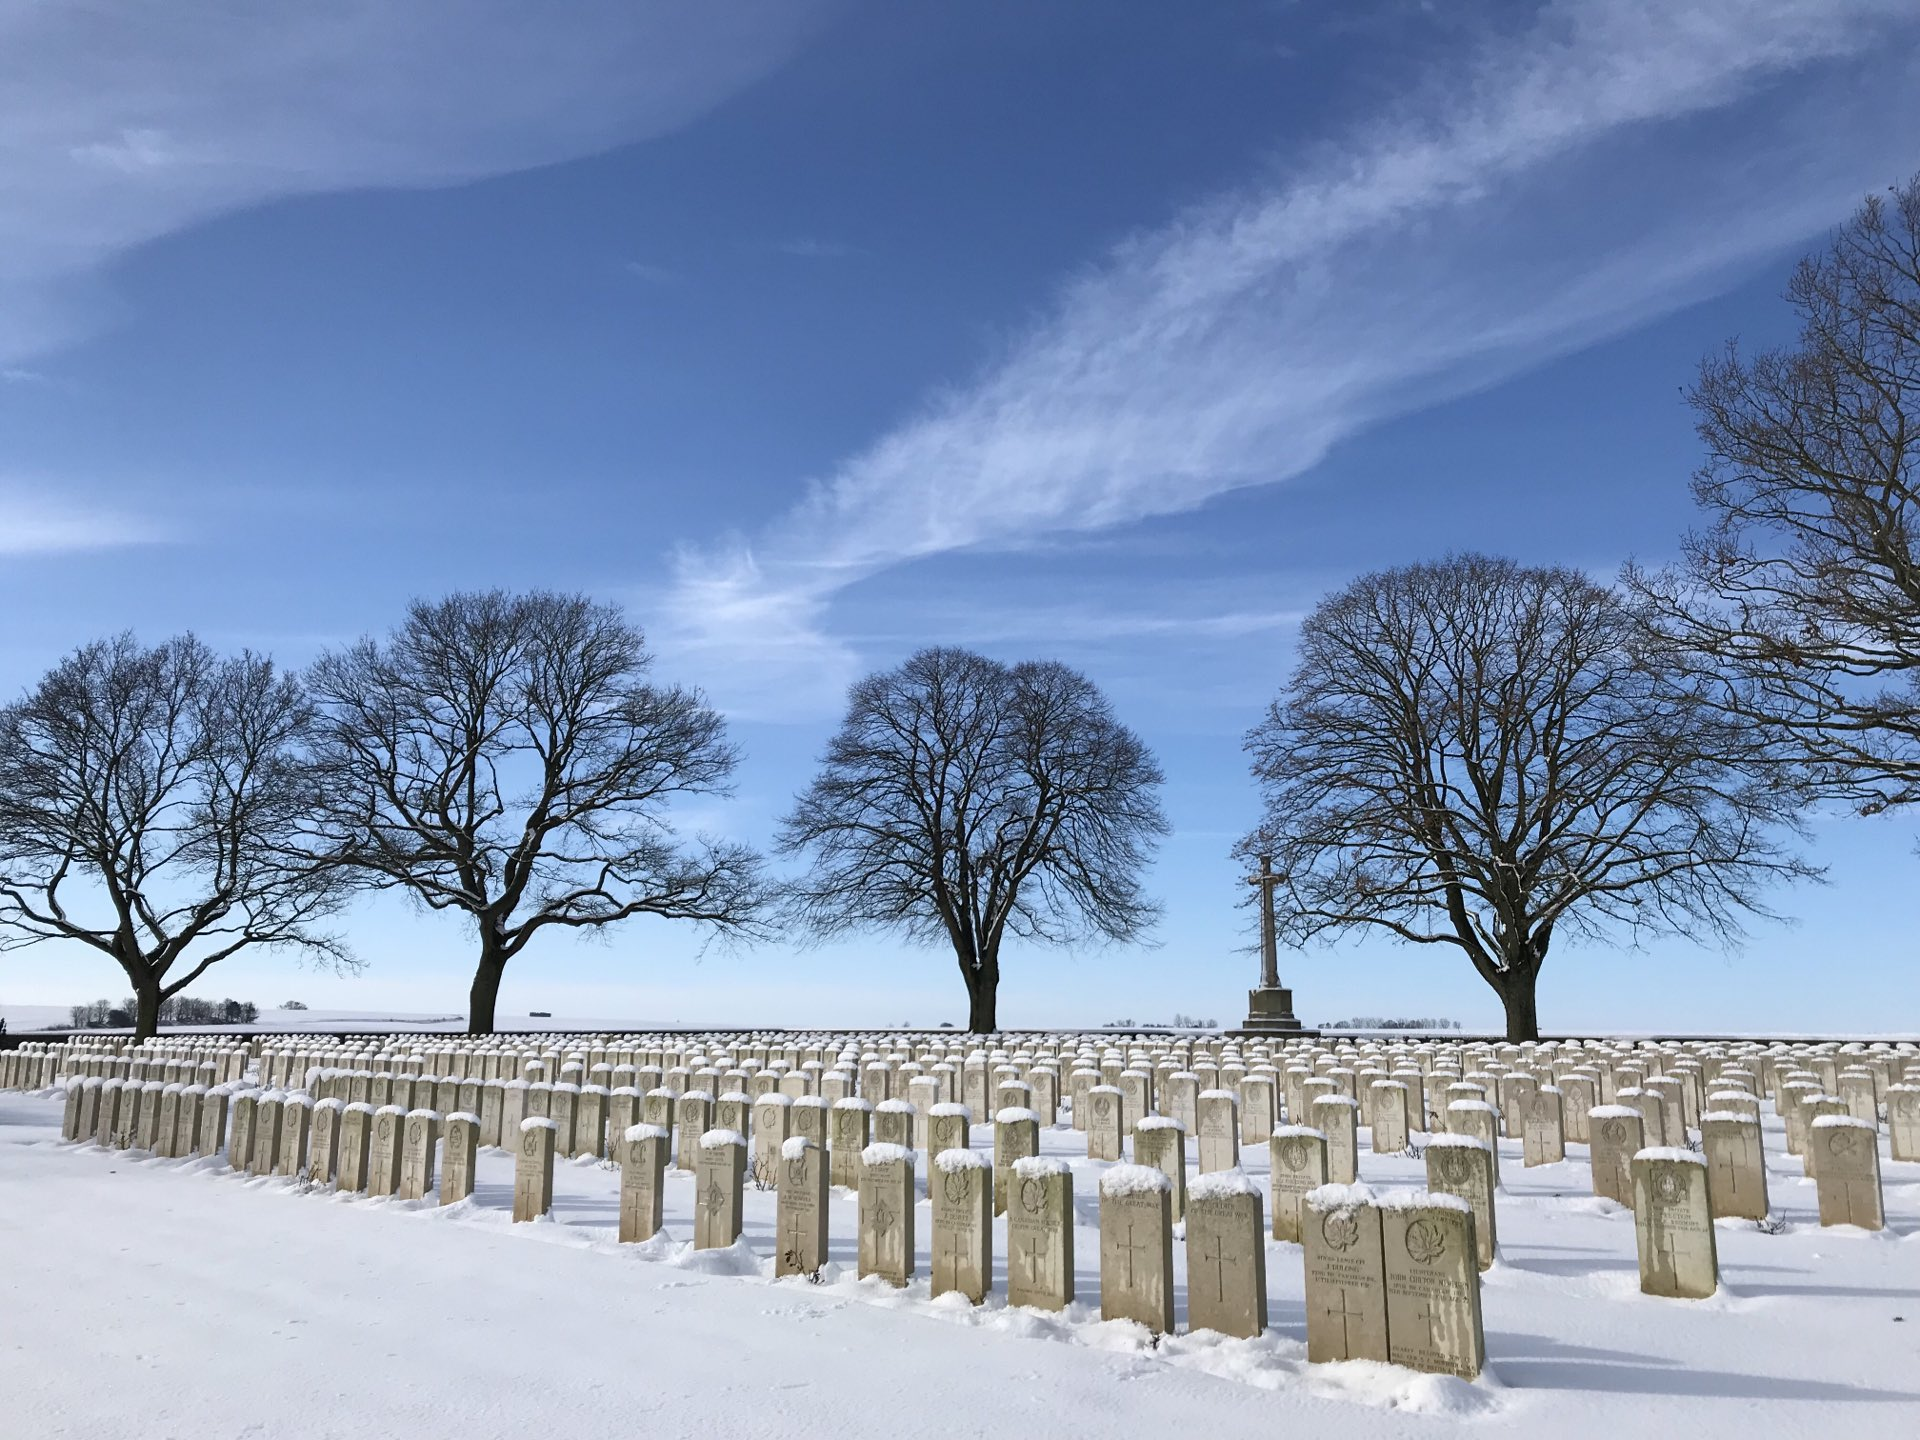 Courcelette British Cemetery in the snow, February 2019. https://t.co/beH0UARONb